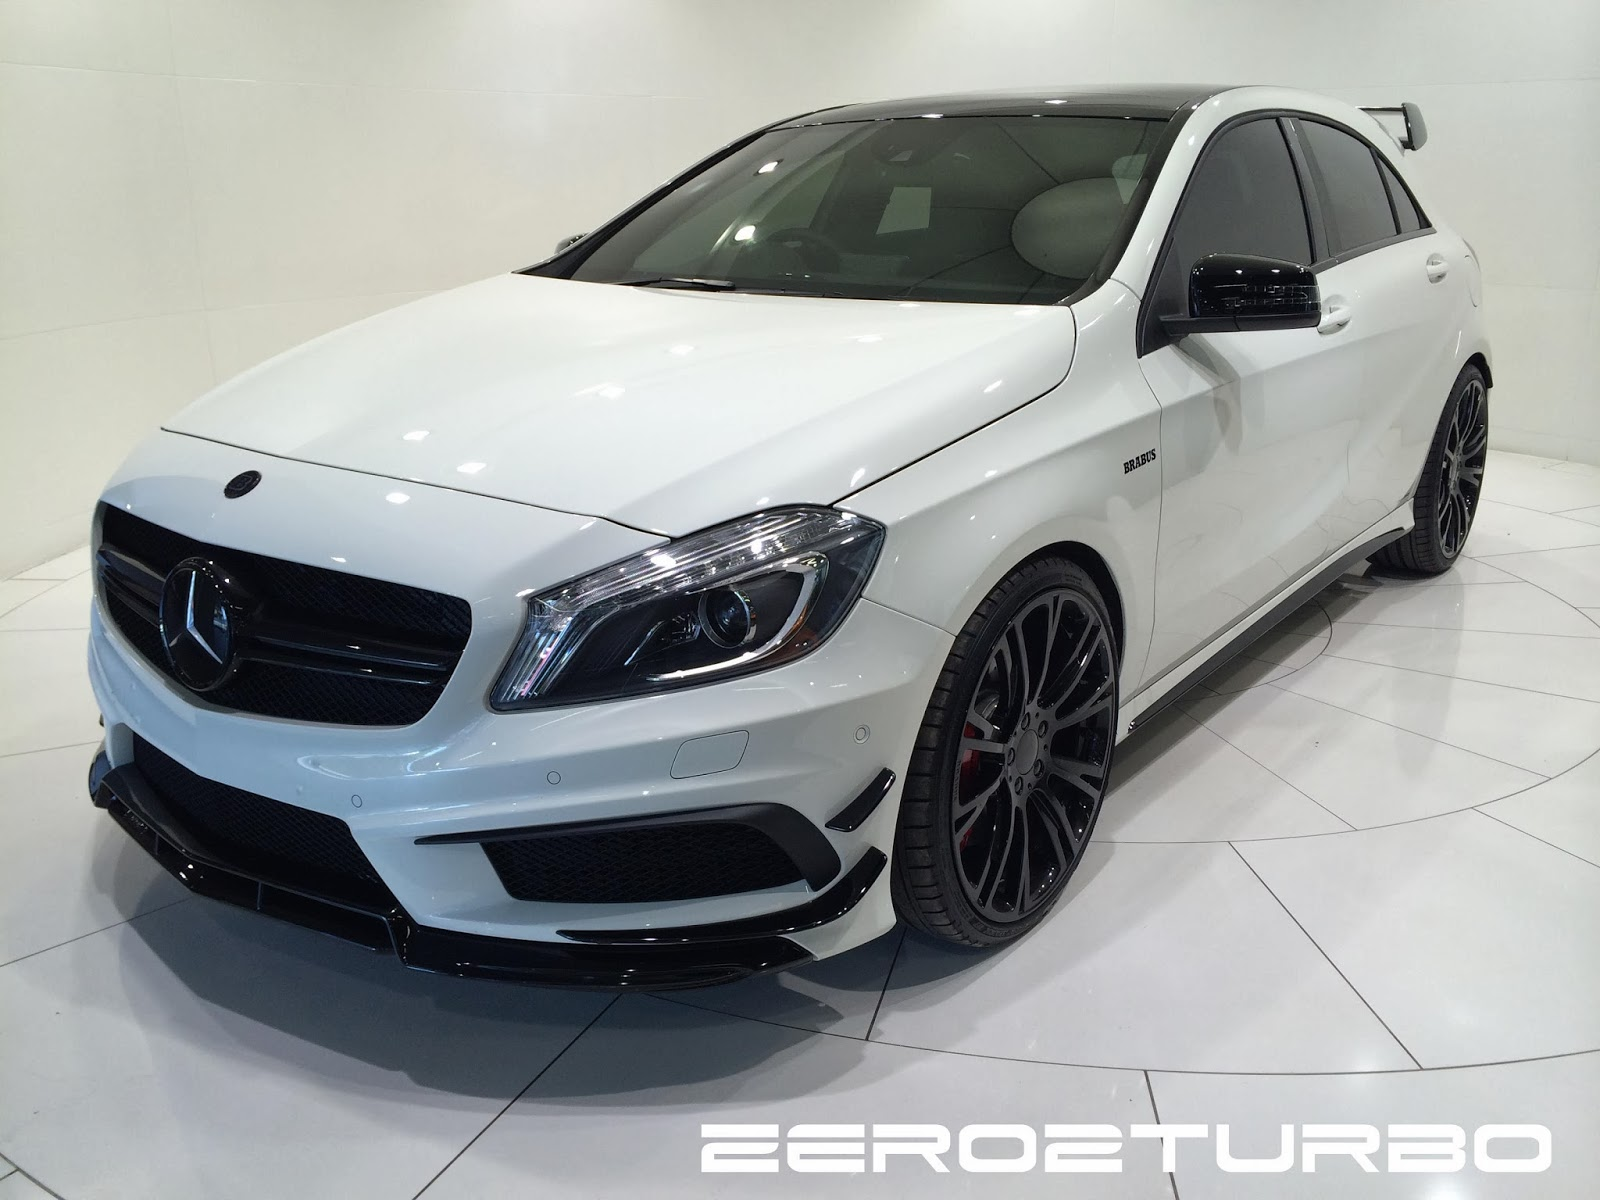 brabus a45 amg in south africa. Black Bedroom Furniture Sets. Home Design Ideas